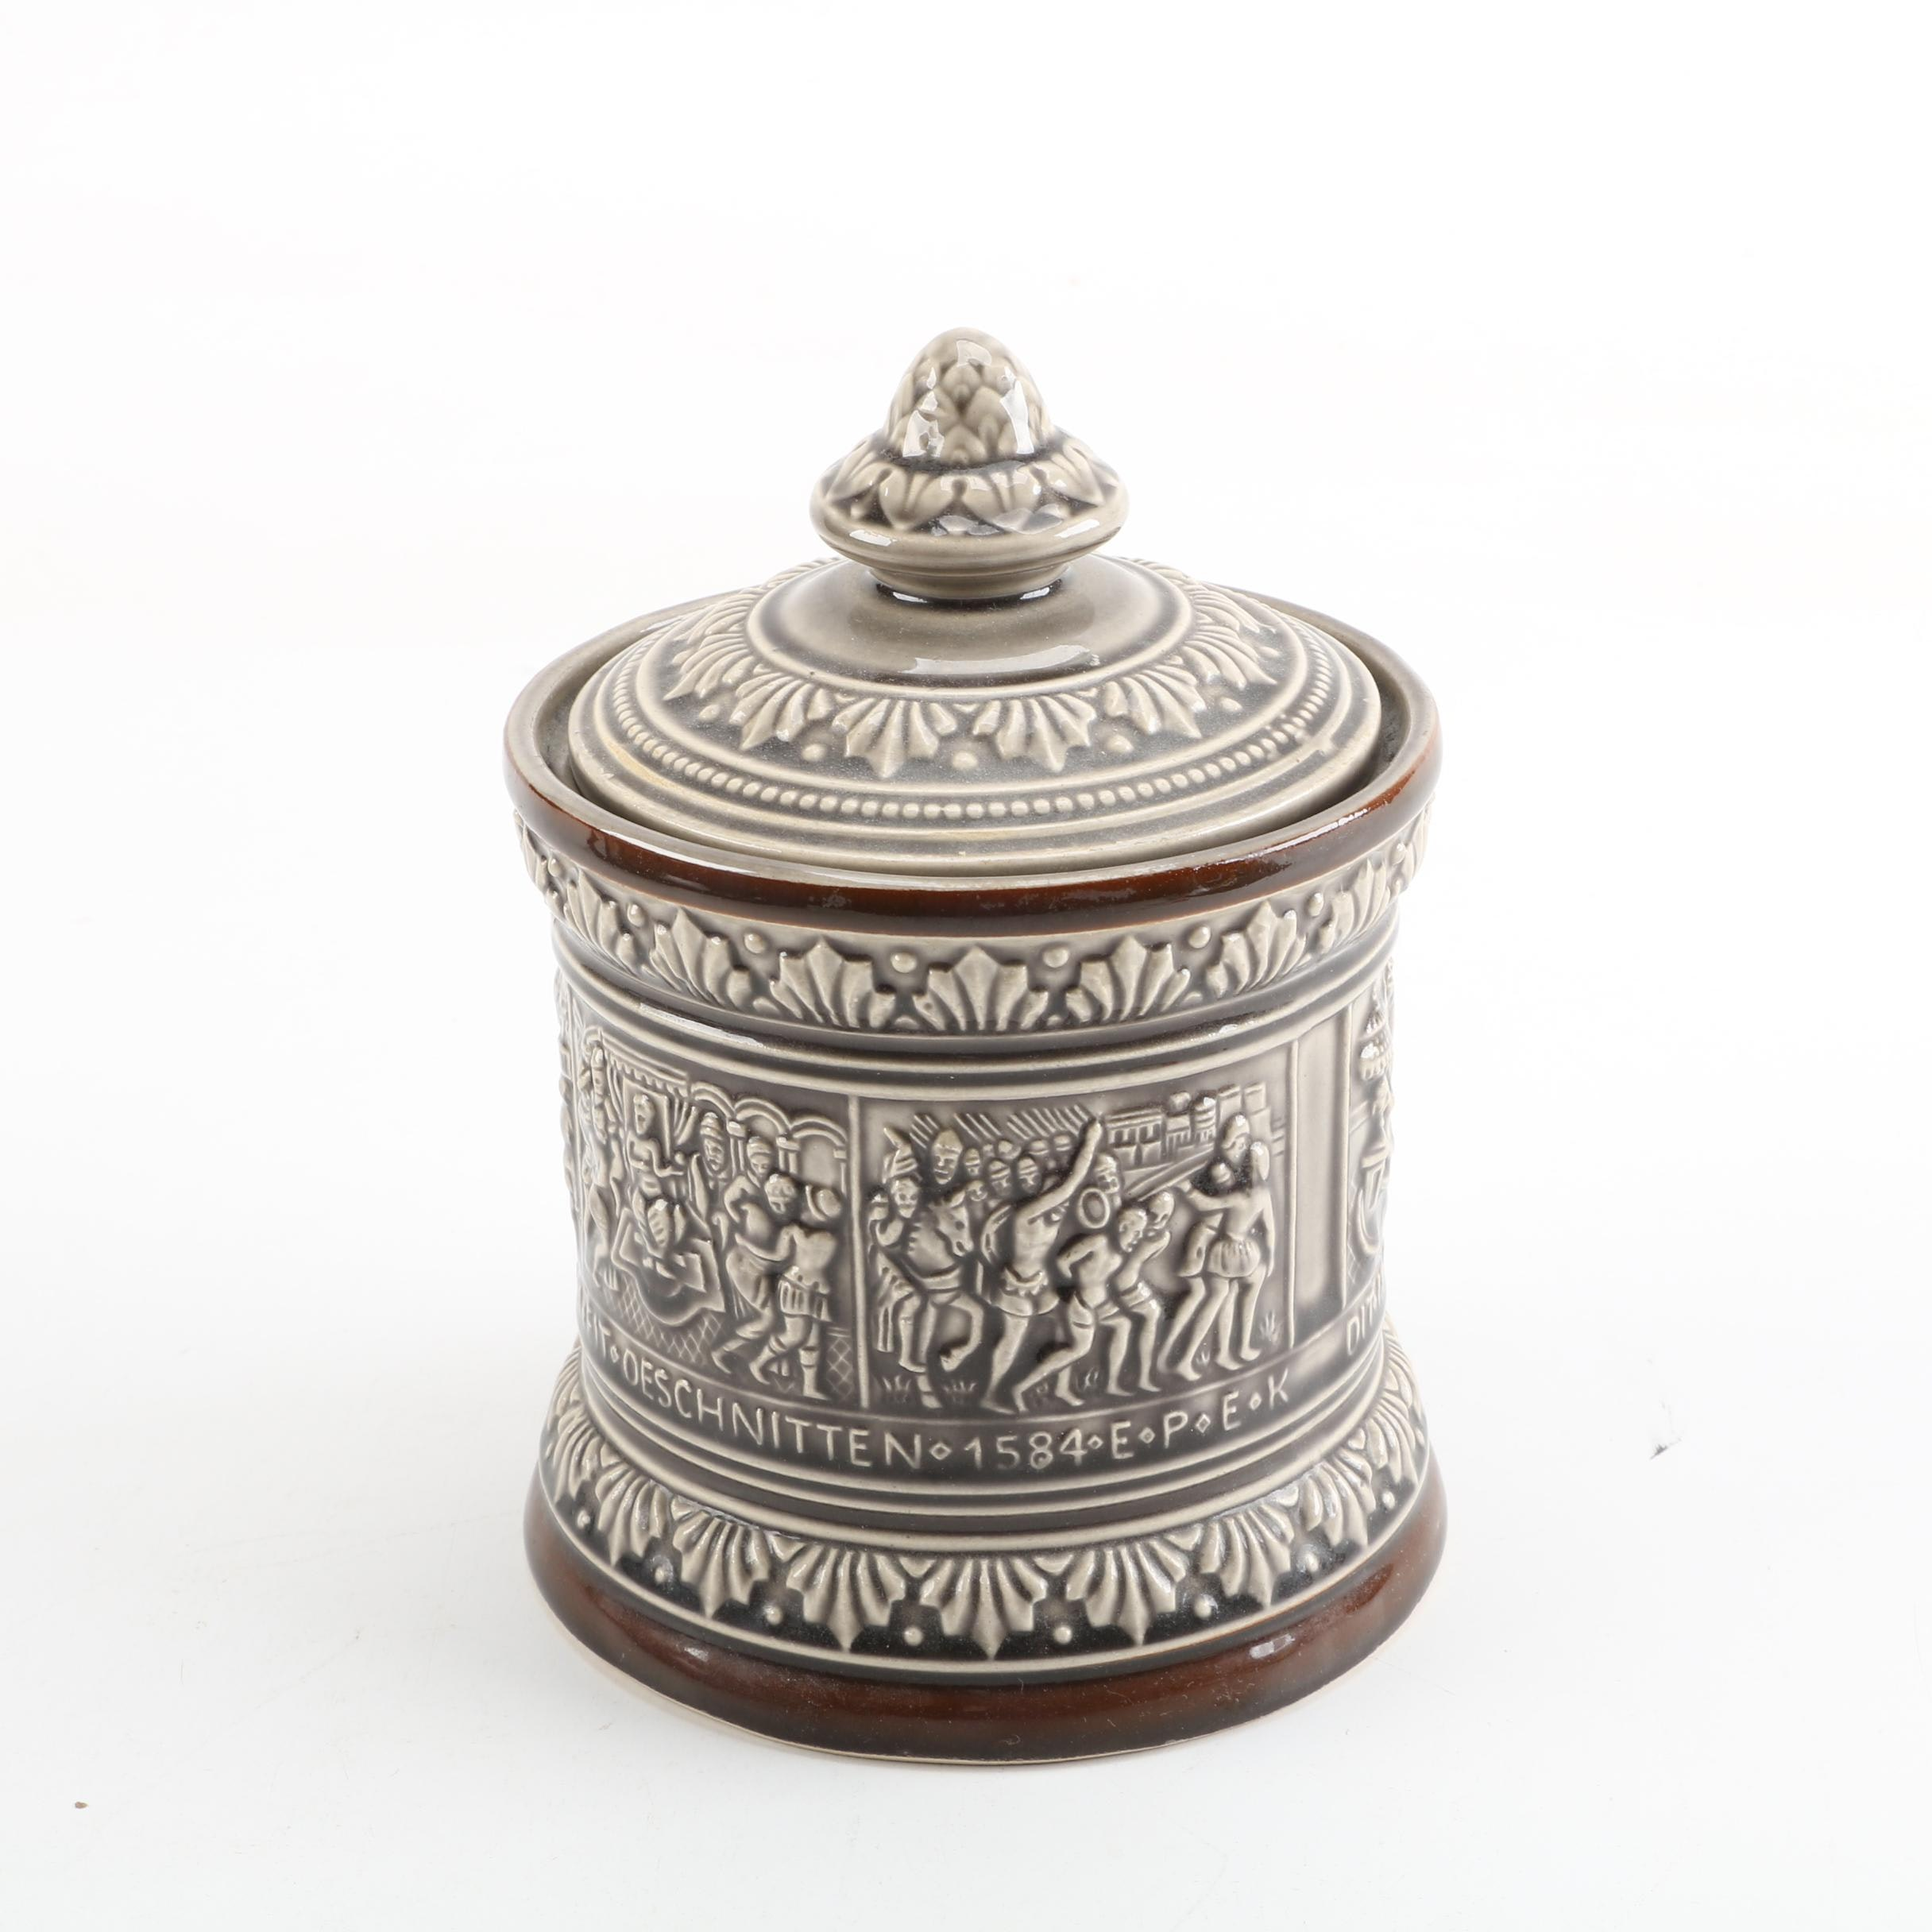 Marzi and Remy German Majolica Humidor Tobacco Jar